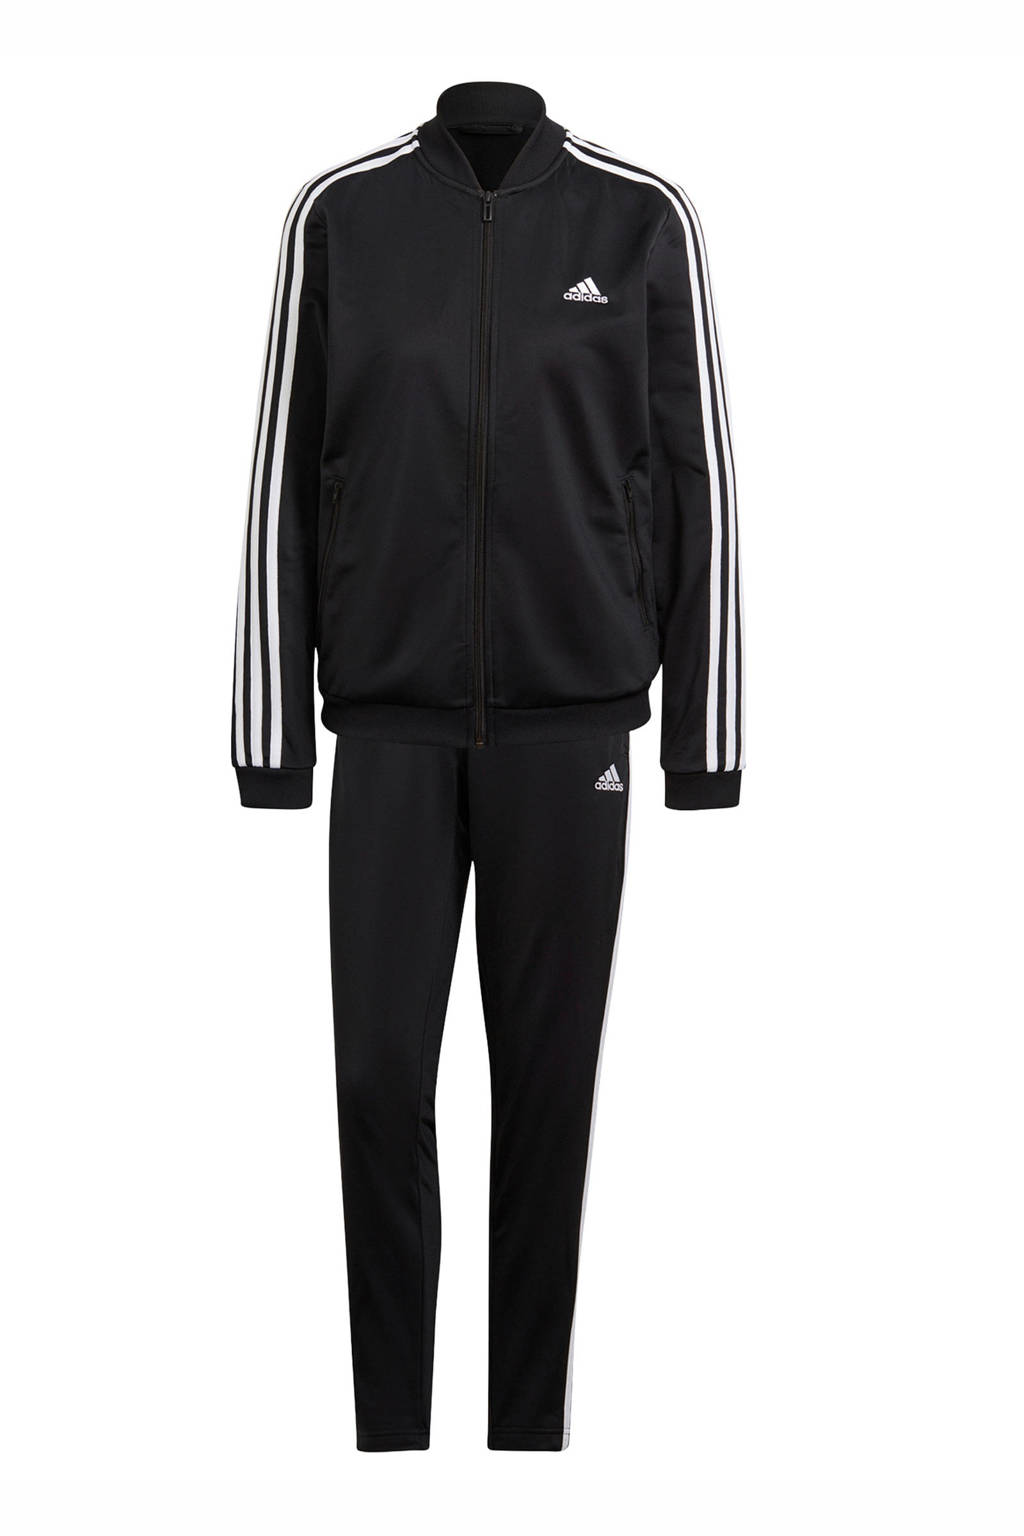 adidas Performance trainingspak zwart/wit, Zwart/wit